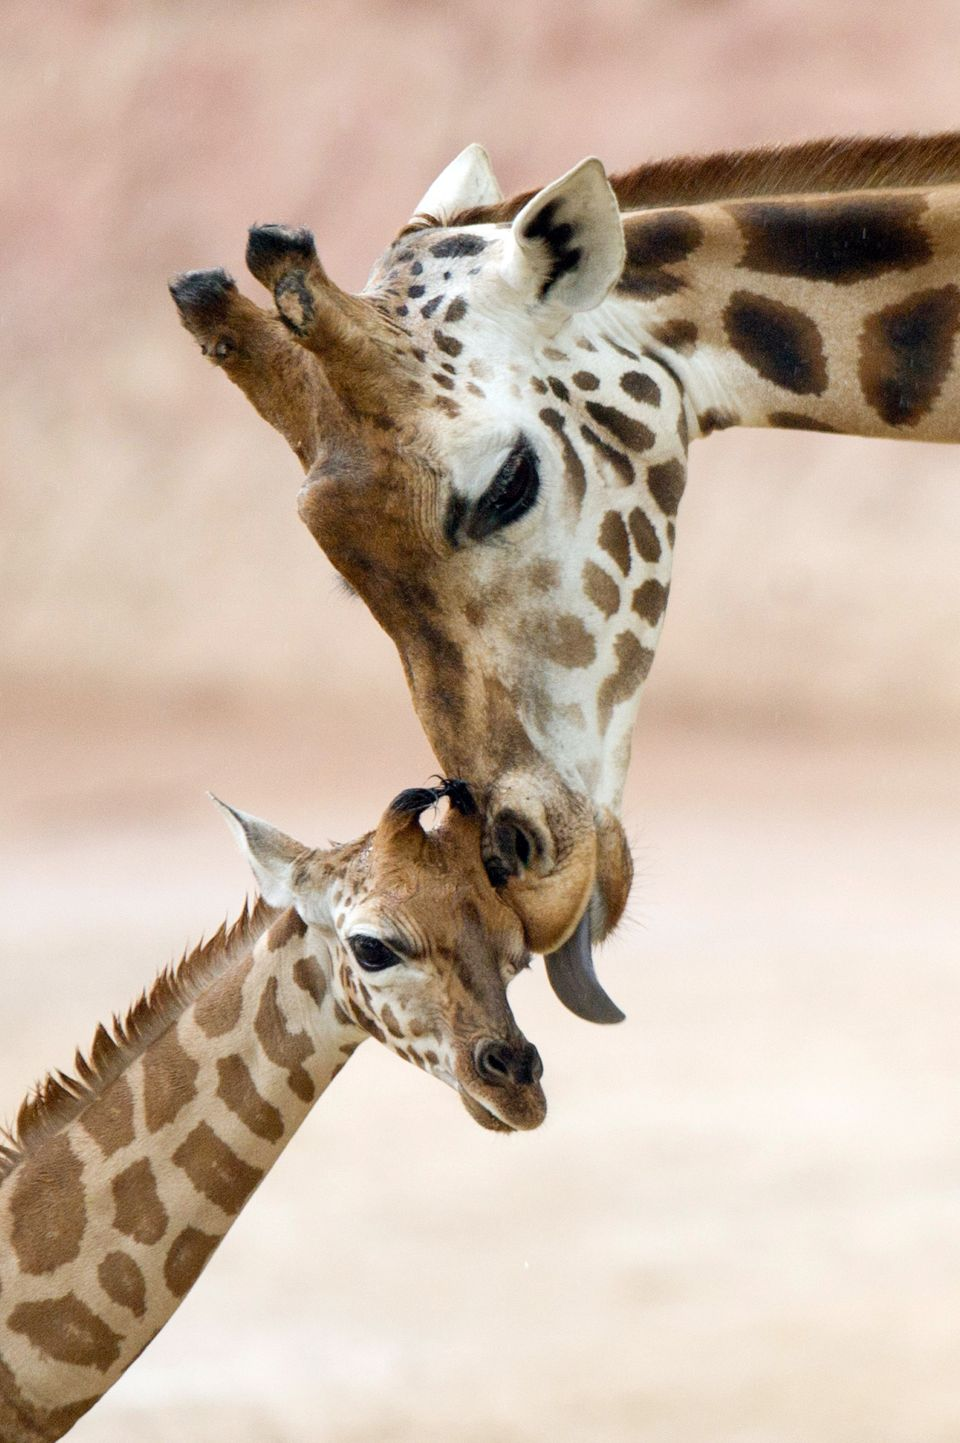 Giraffe baby Jamila canoodles with mother Juji at the outdoor enclosure of the Zoo in Hannover, Germany.